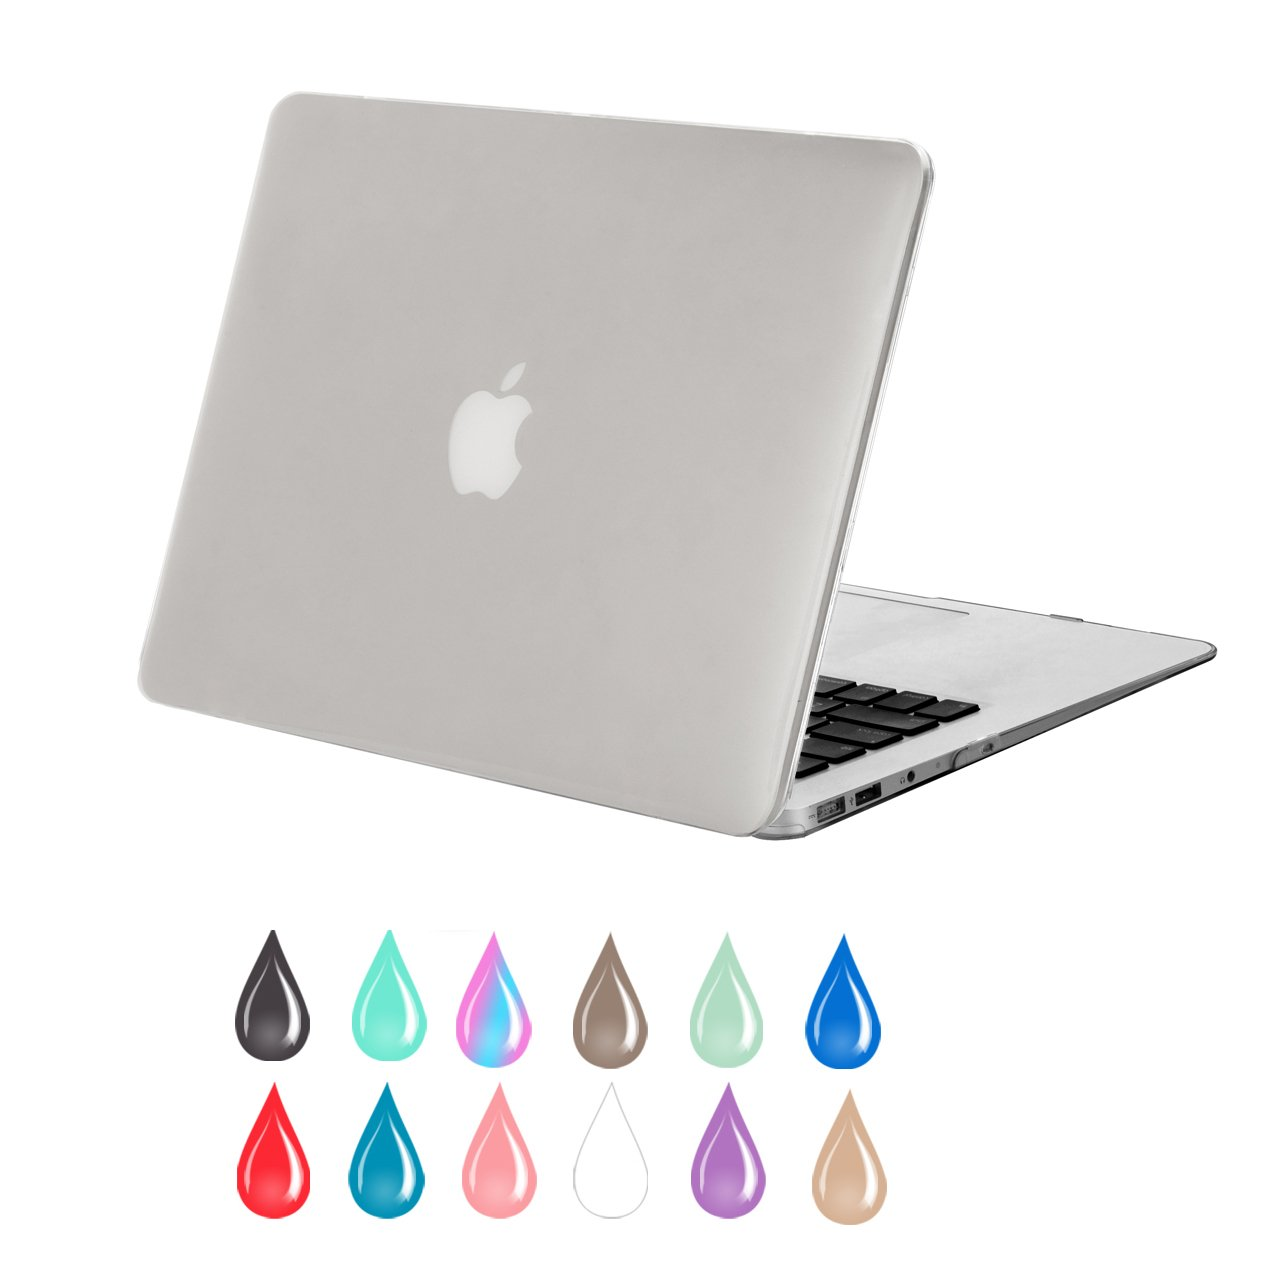 "Mosiso - Clear Crystal AIR 13-inch See Through Hard Shell Snap On Case Cover for Apple MacBook Air 13.3"" (Models: A1369 and A1466) (Clear/Crystal)"